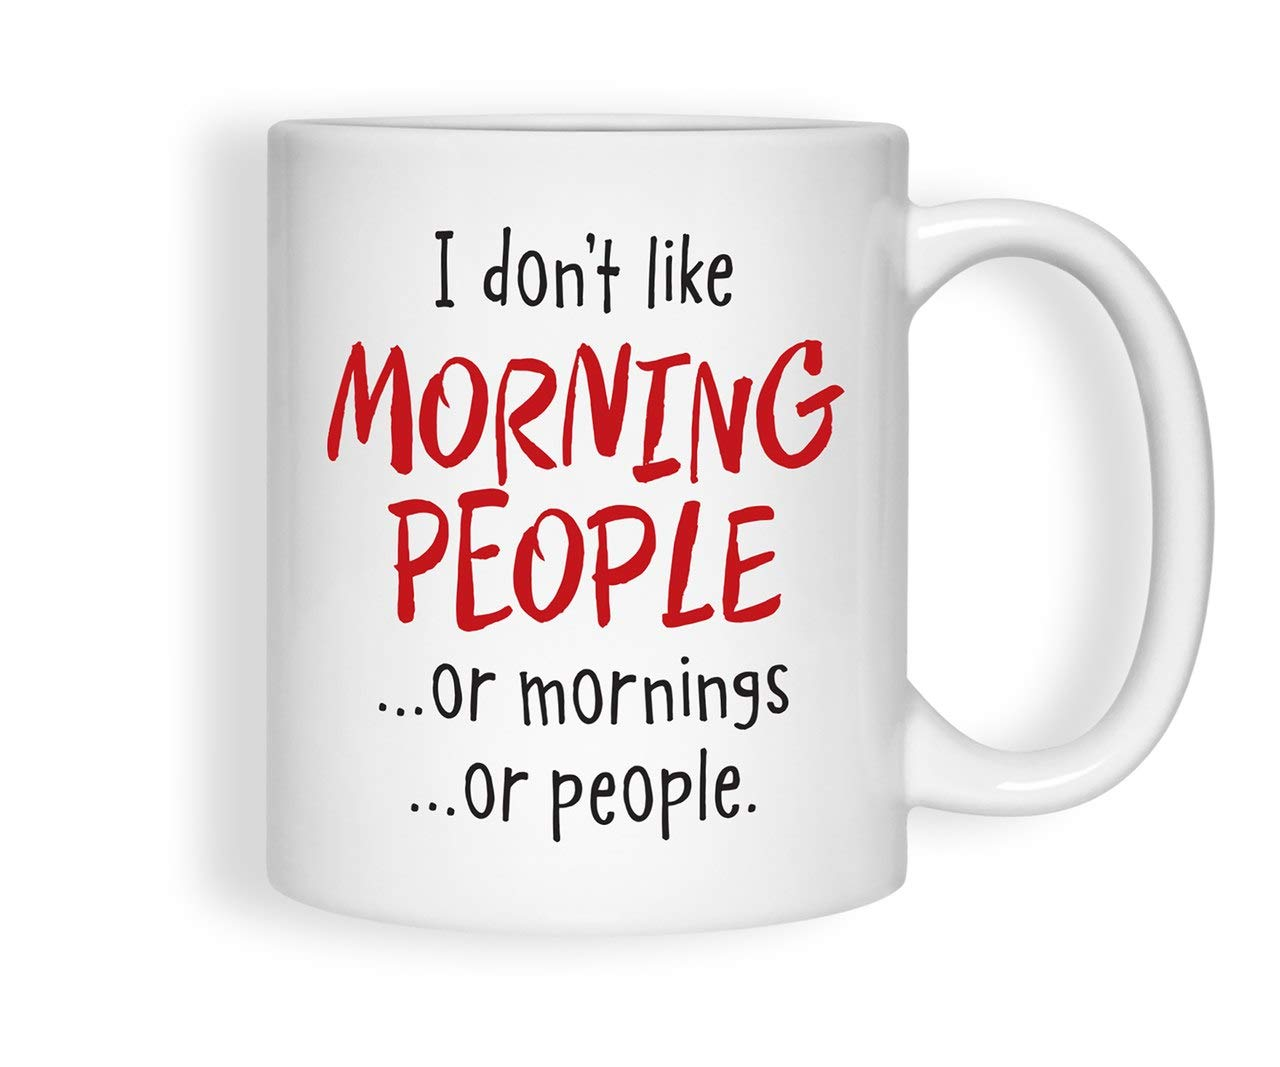 マグカップ I don't like morning people.or mornings.or people B07MC1B2WK